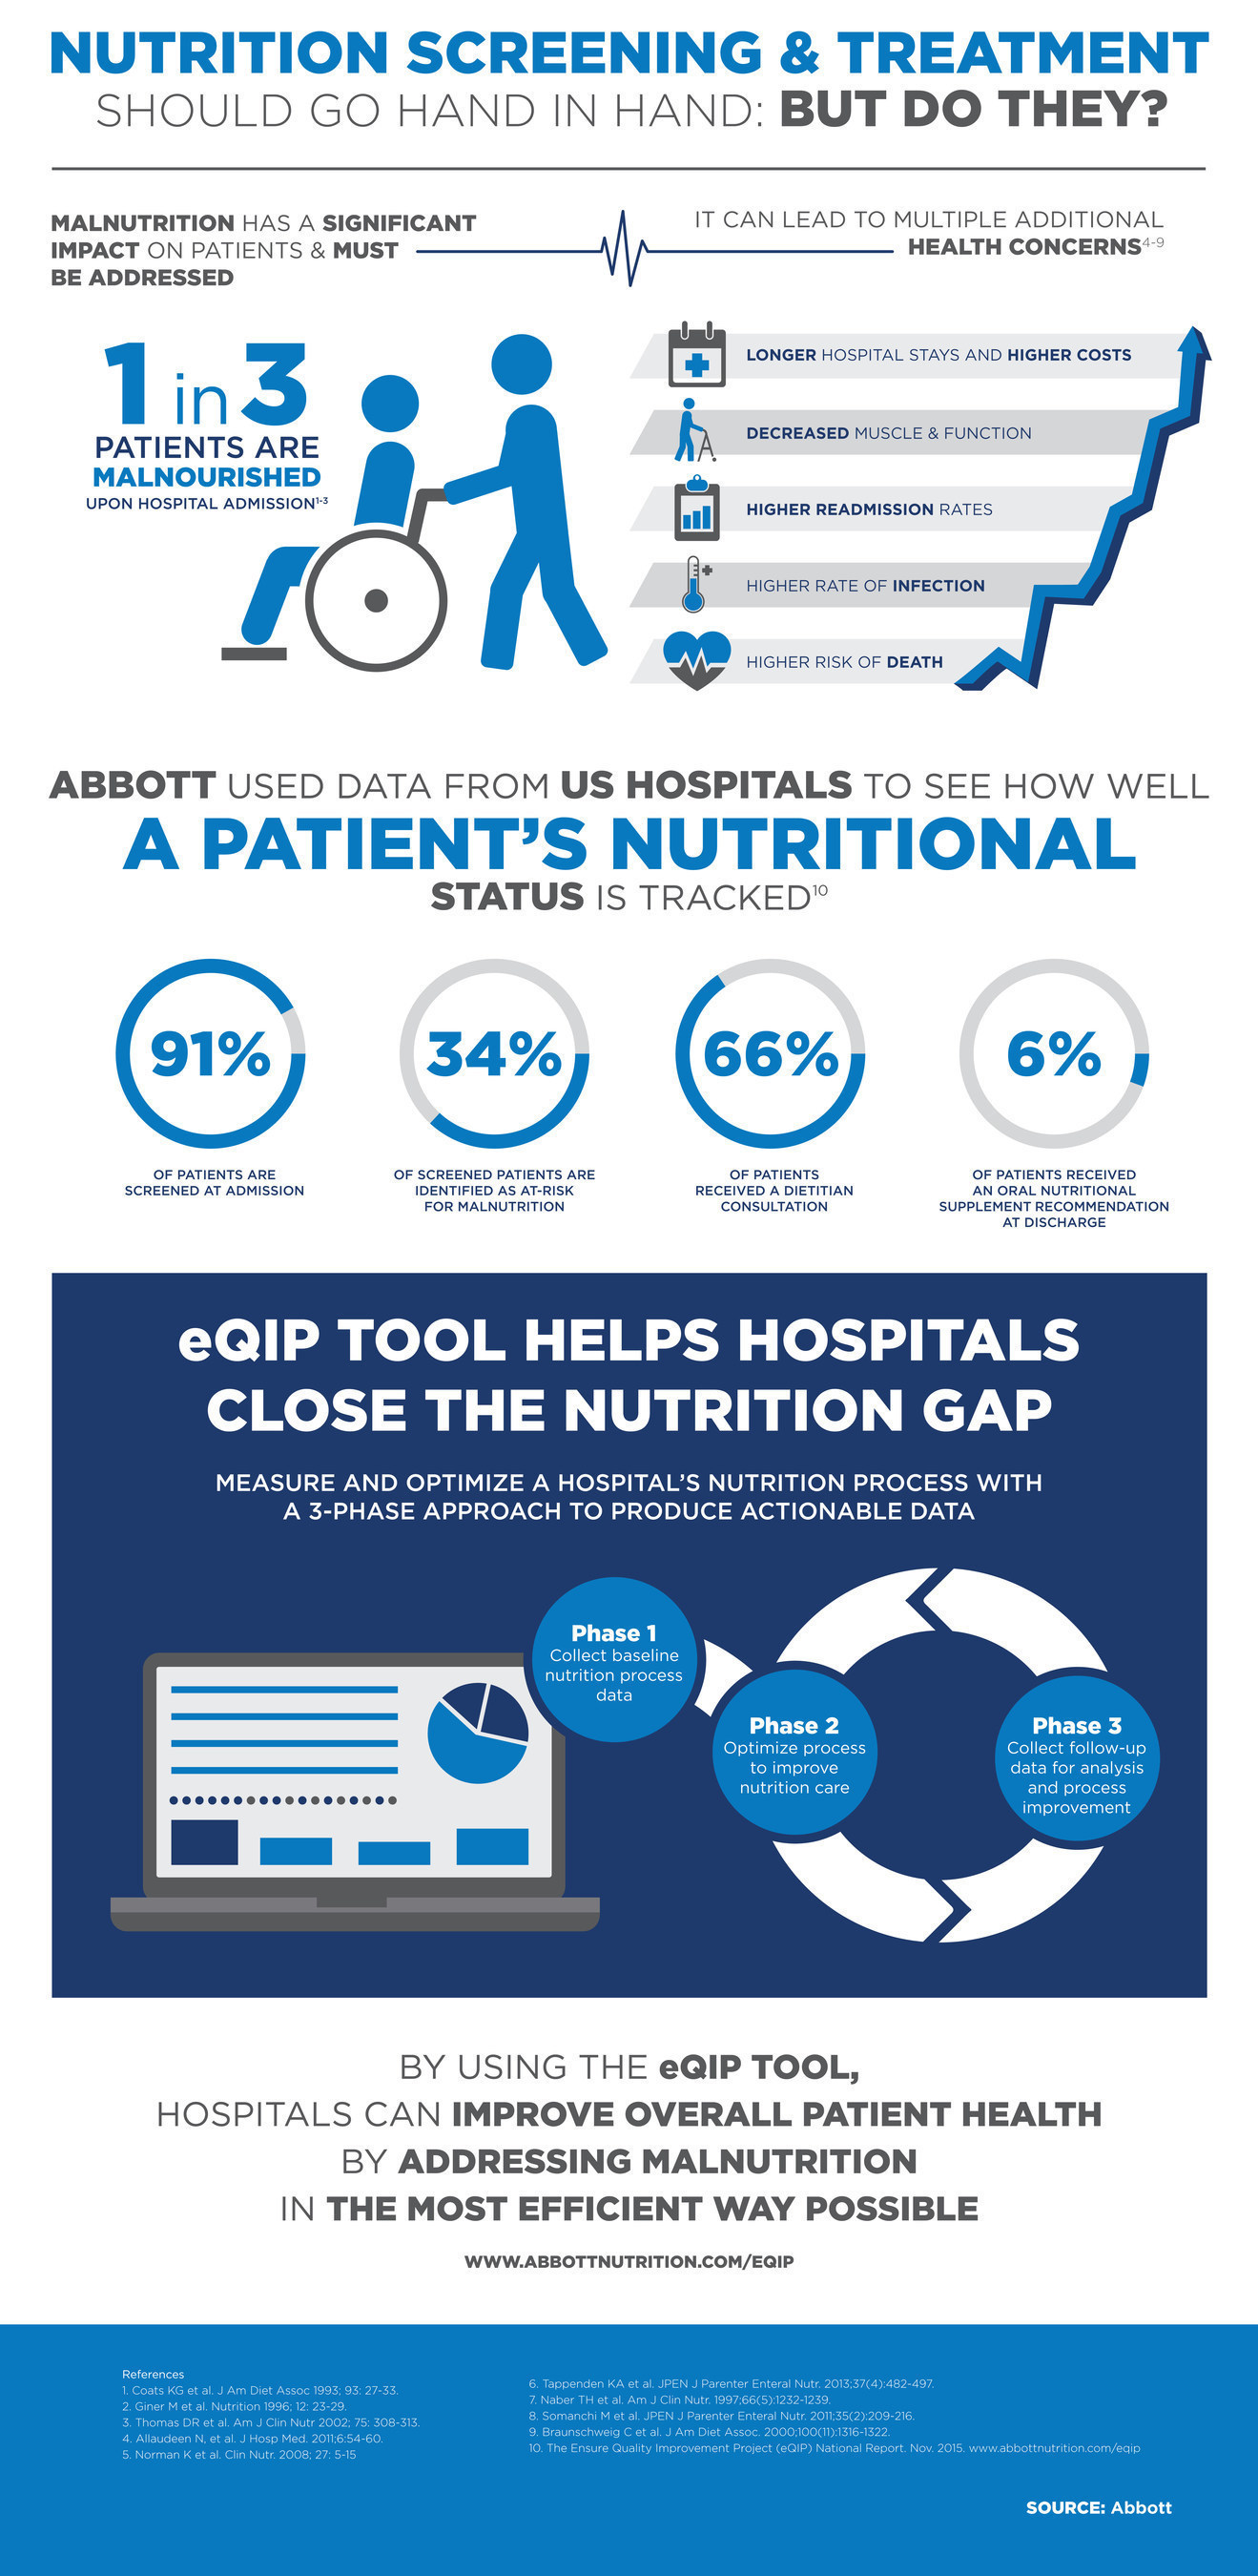 A closer look at tracking and treating malnutrition in the hospital.